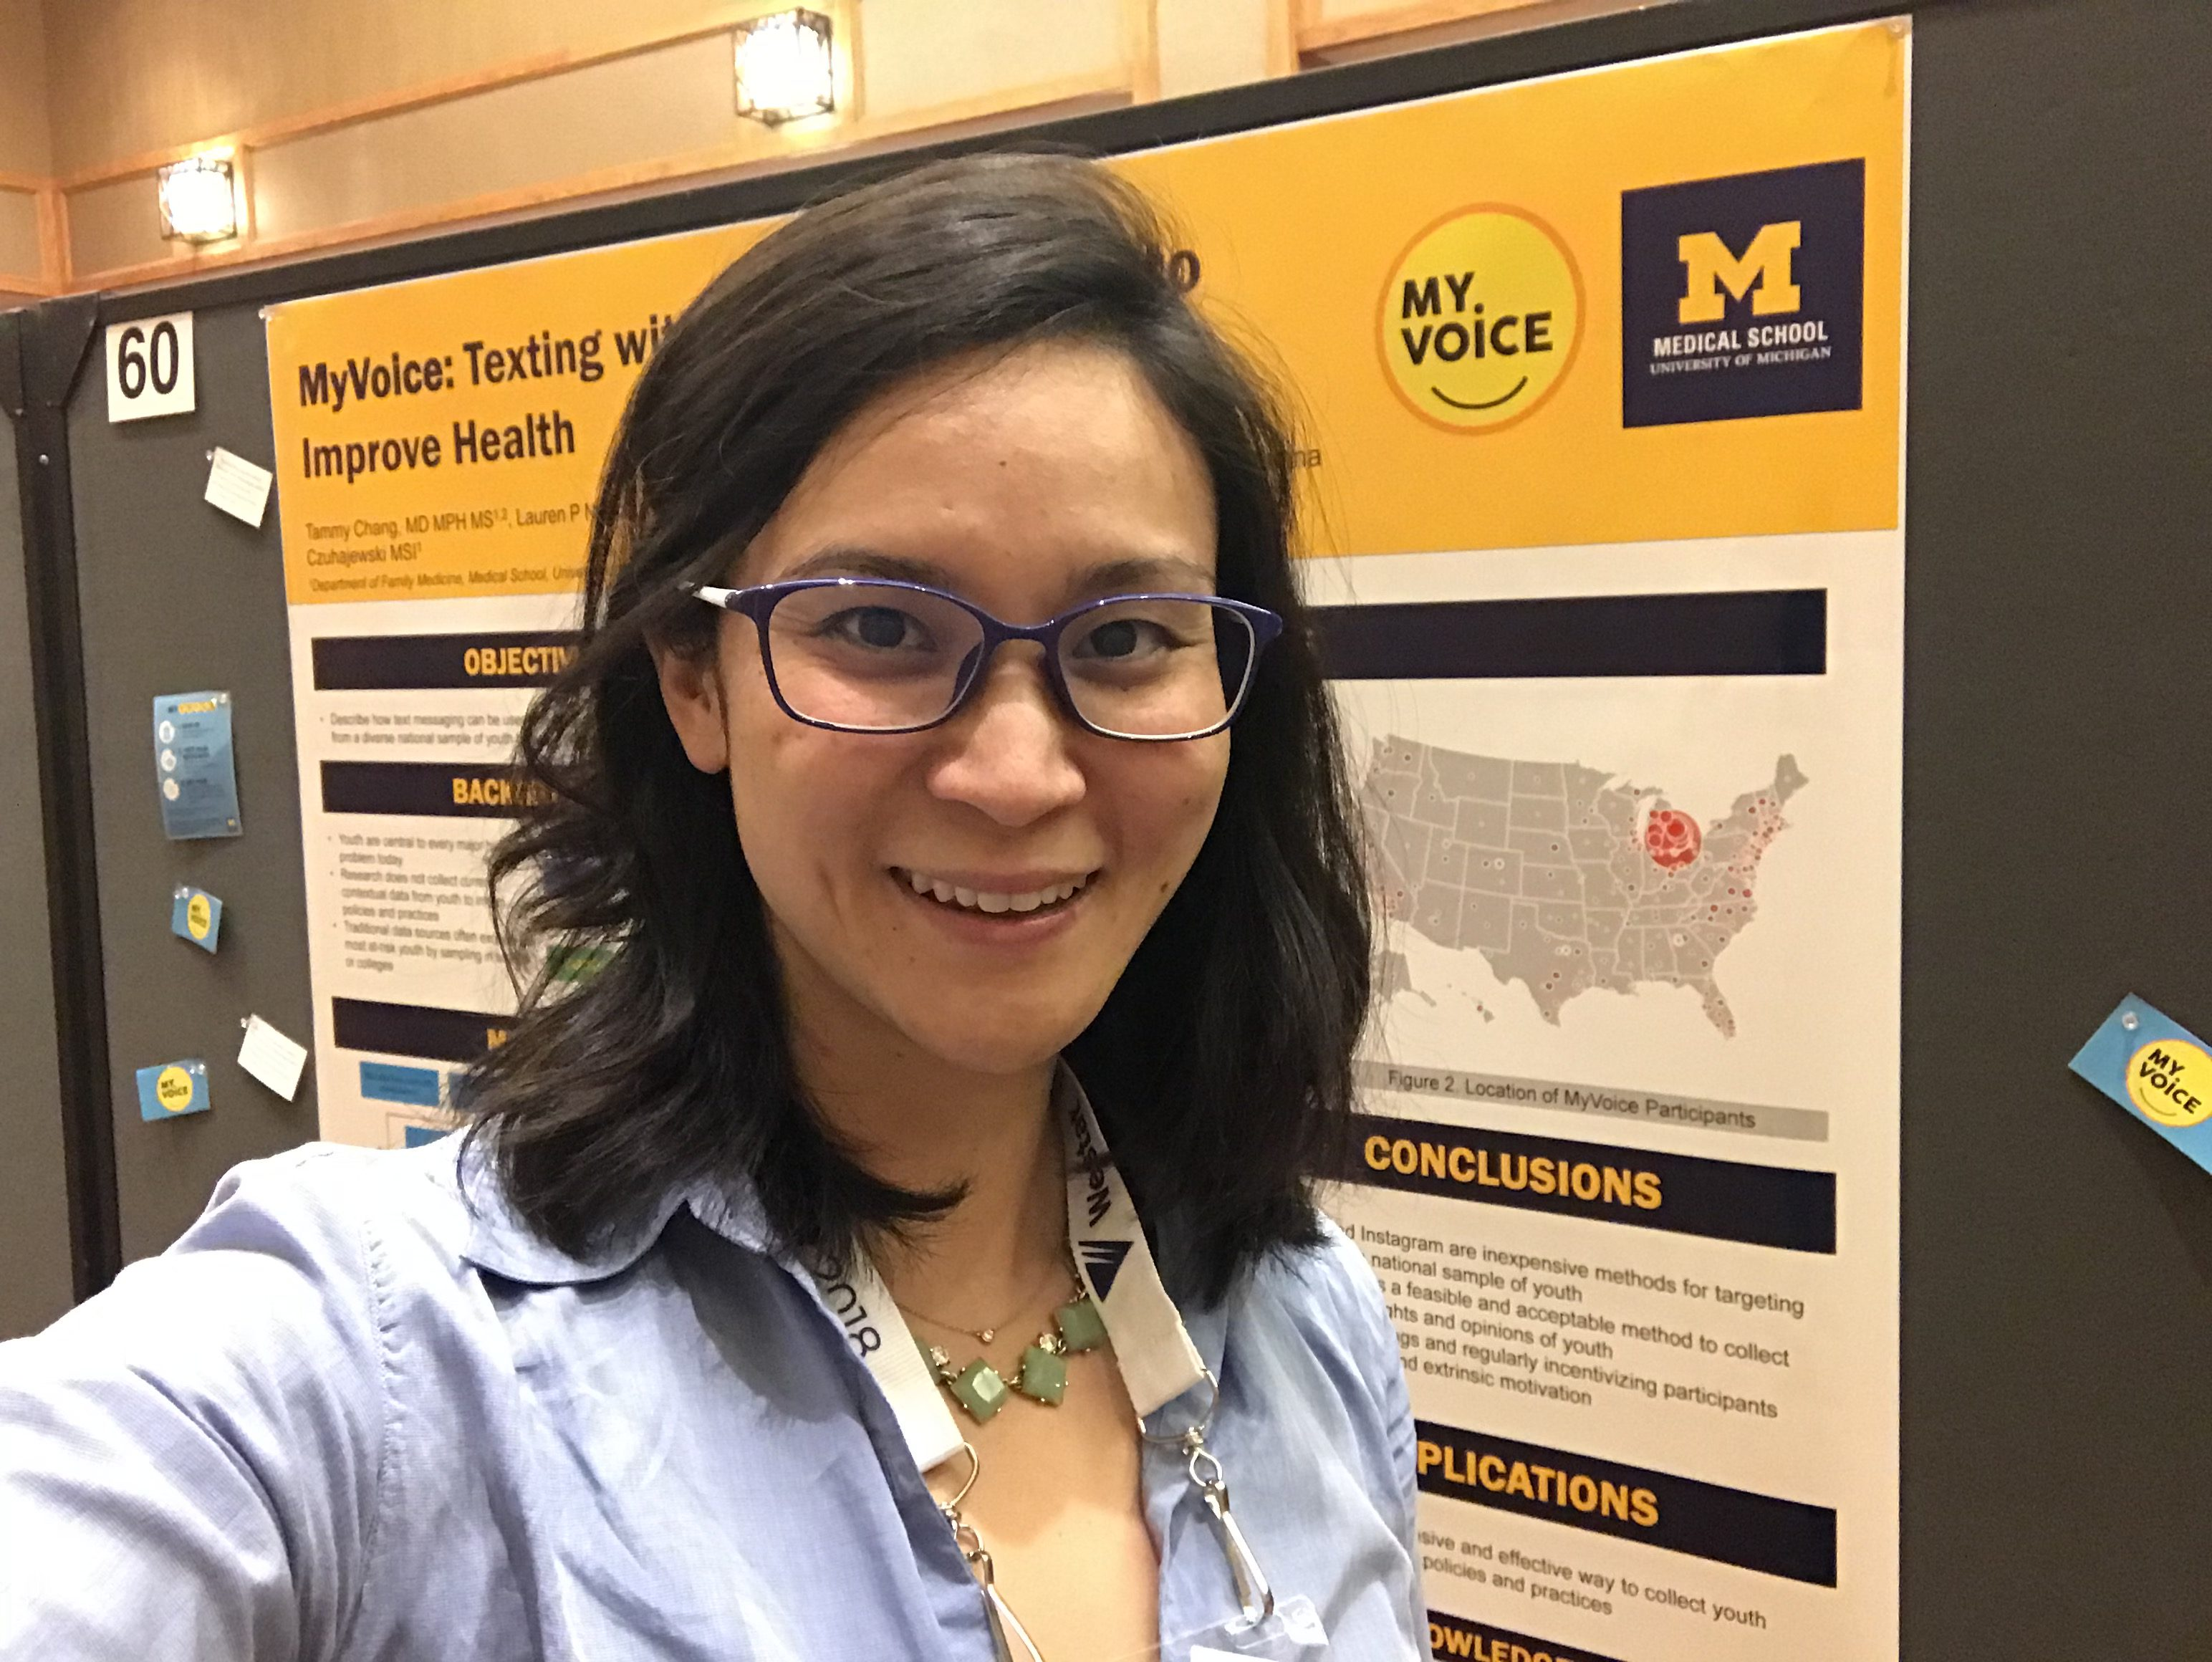 MyVoice Presents: American Association for Public Opinion Research (AAPOR)